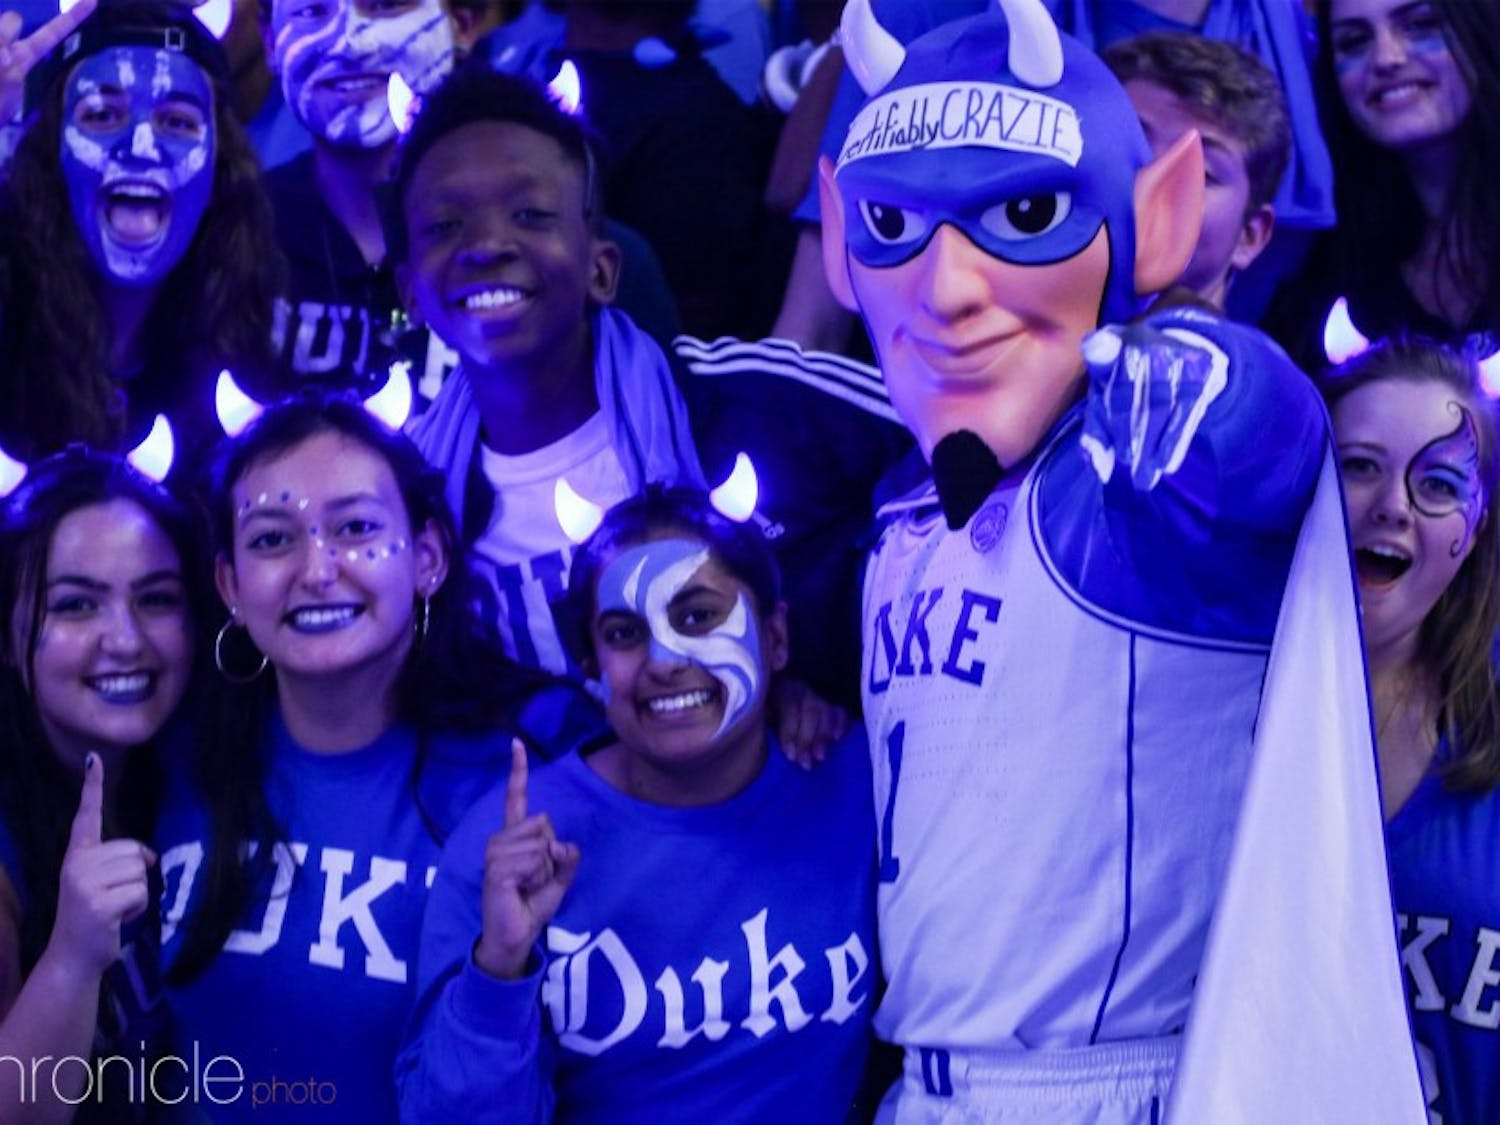 Duke men's basketball fans will get their first look at the team when they convene in Cameron Indoor for Friday's Countdown to Craziness.